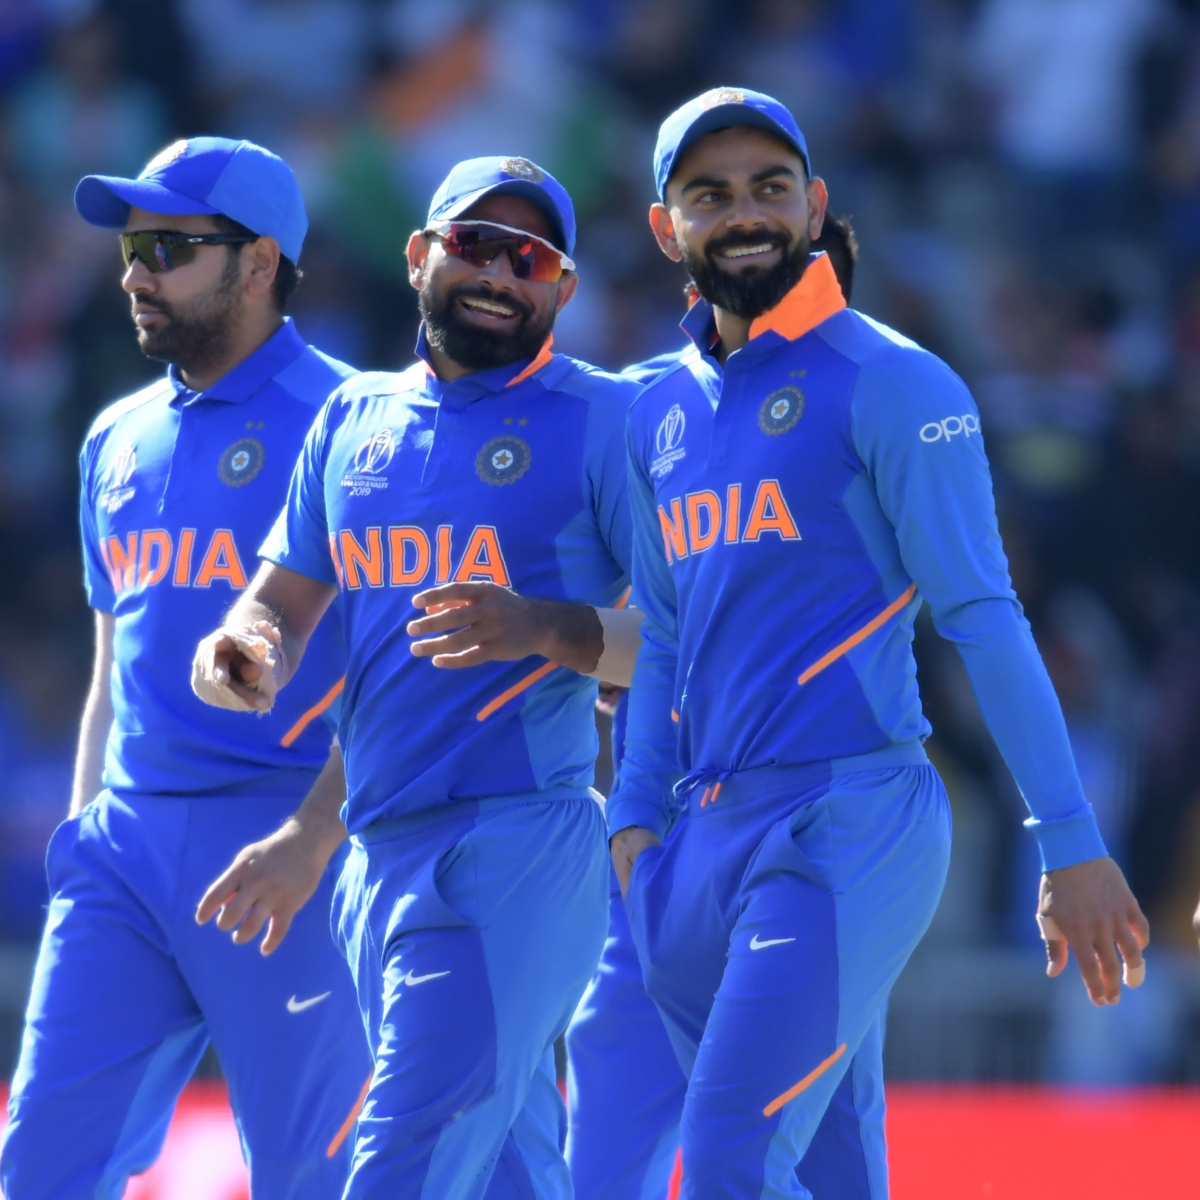 Cricket Score - England vs India World Cup 2019 Match 38